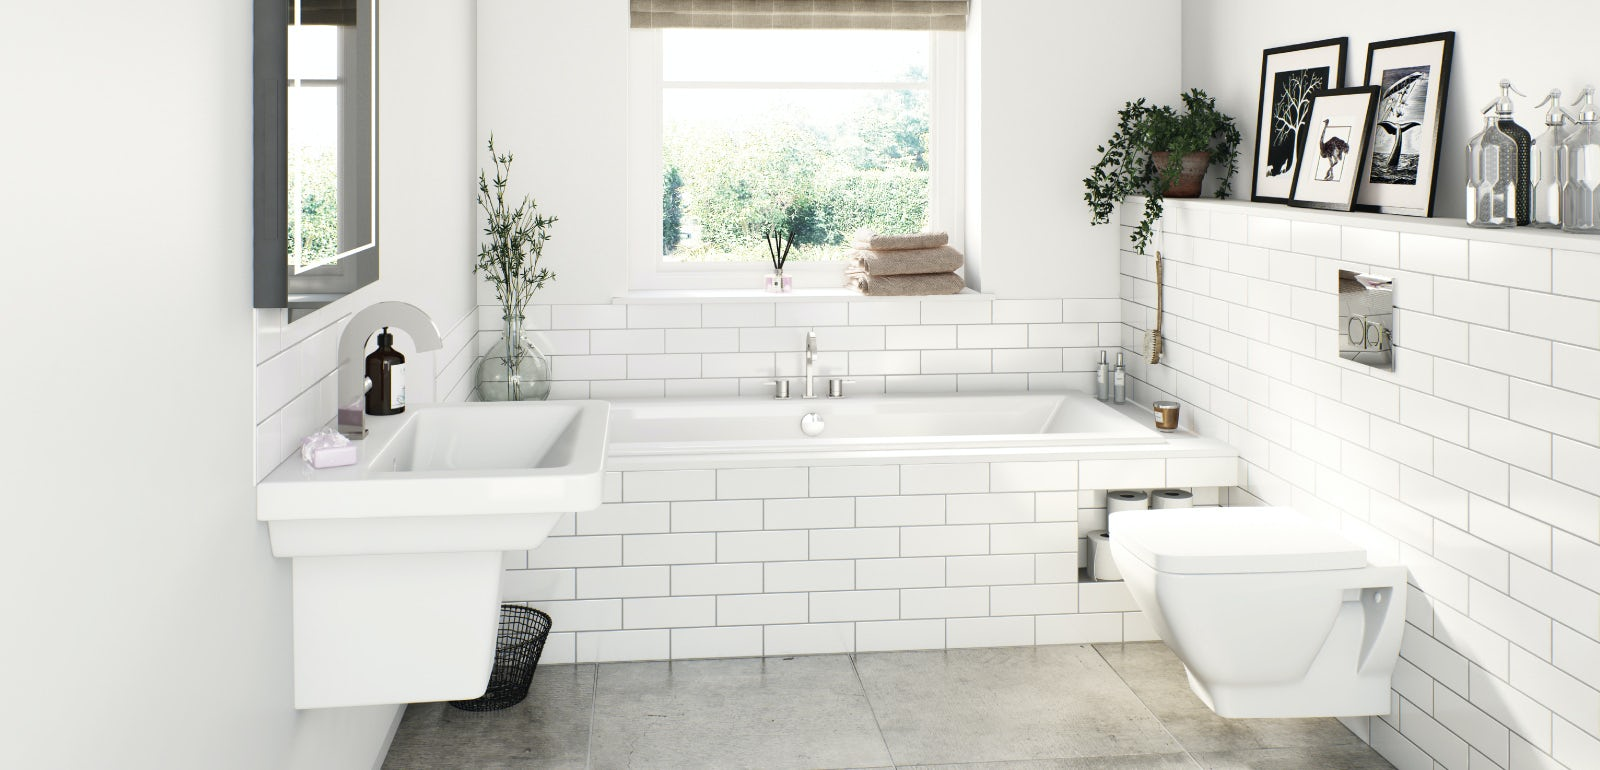 Designer bathroom suites 5 of the best for The bathroom designer